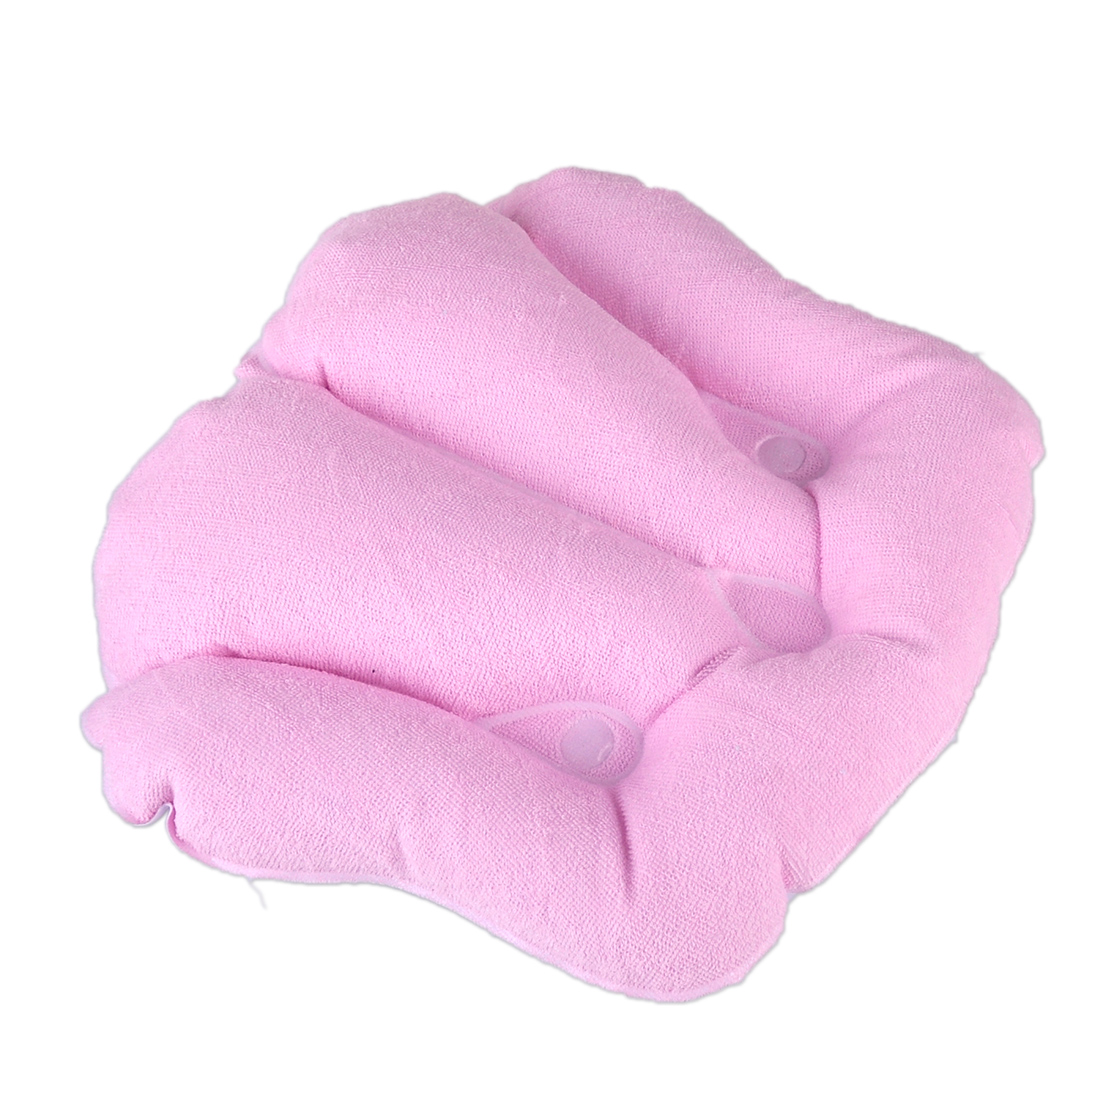 Home Spa Back Neck Cushion Shell Inflatable Terrycloth